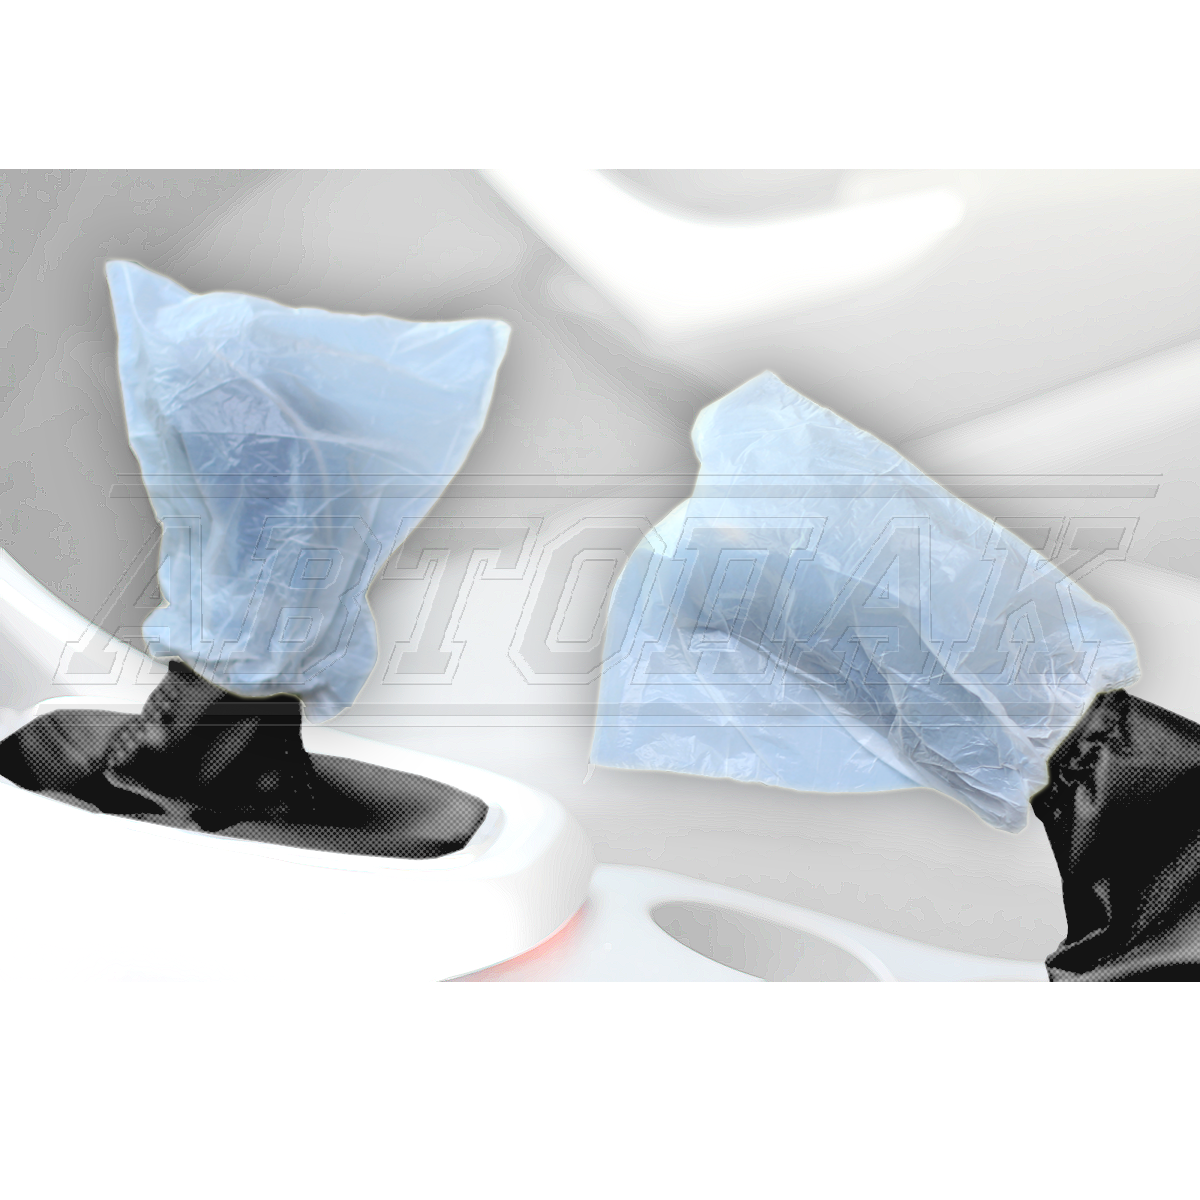 Disposable covers for the gearshift and handbrake